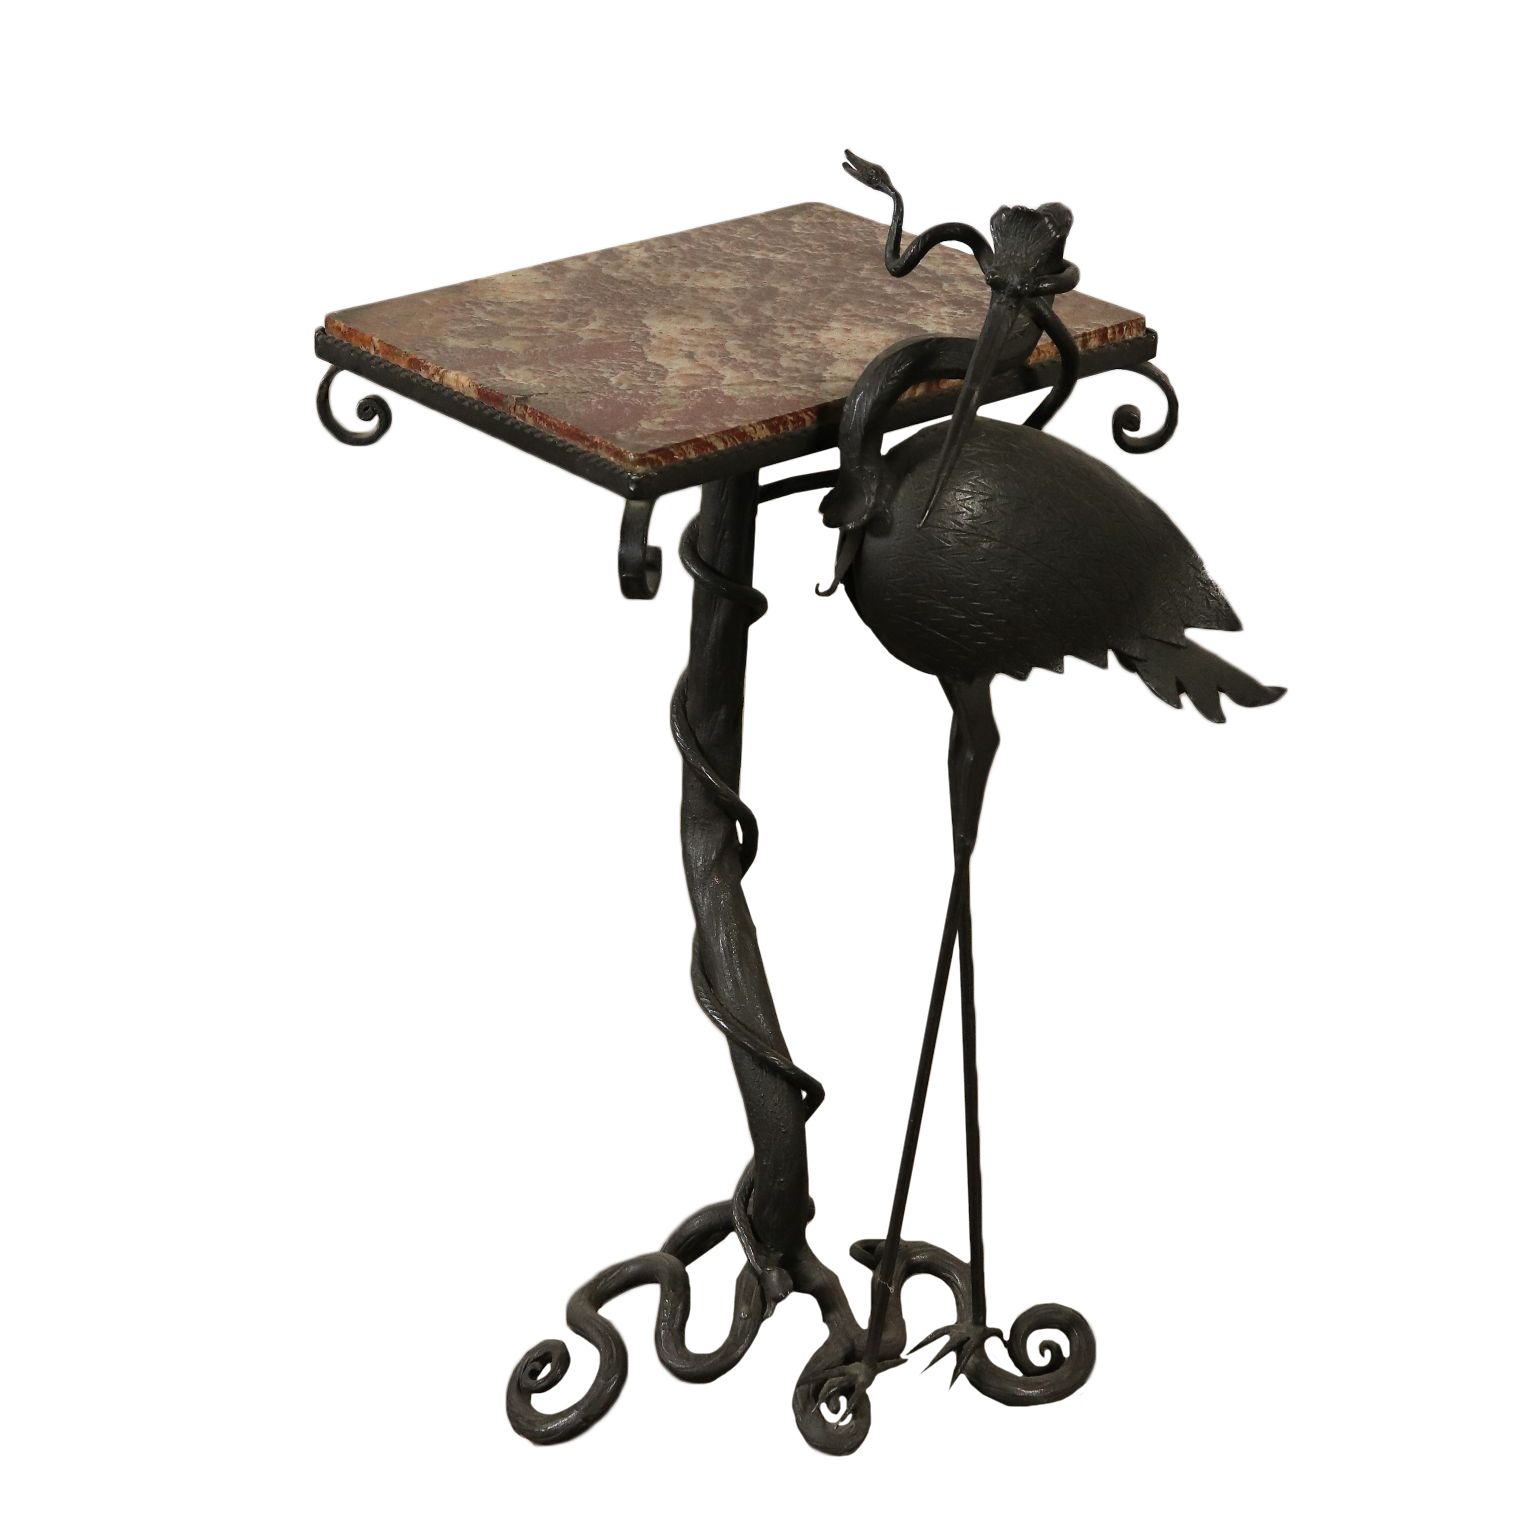 Antiques Coffee Table Marble Top Wrought Iron Italy Early 1900s